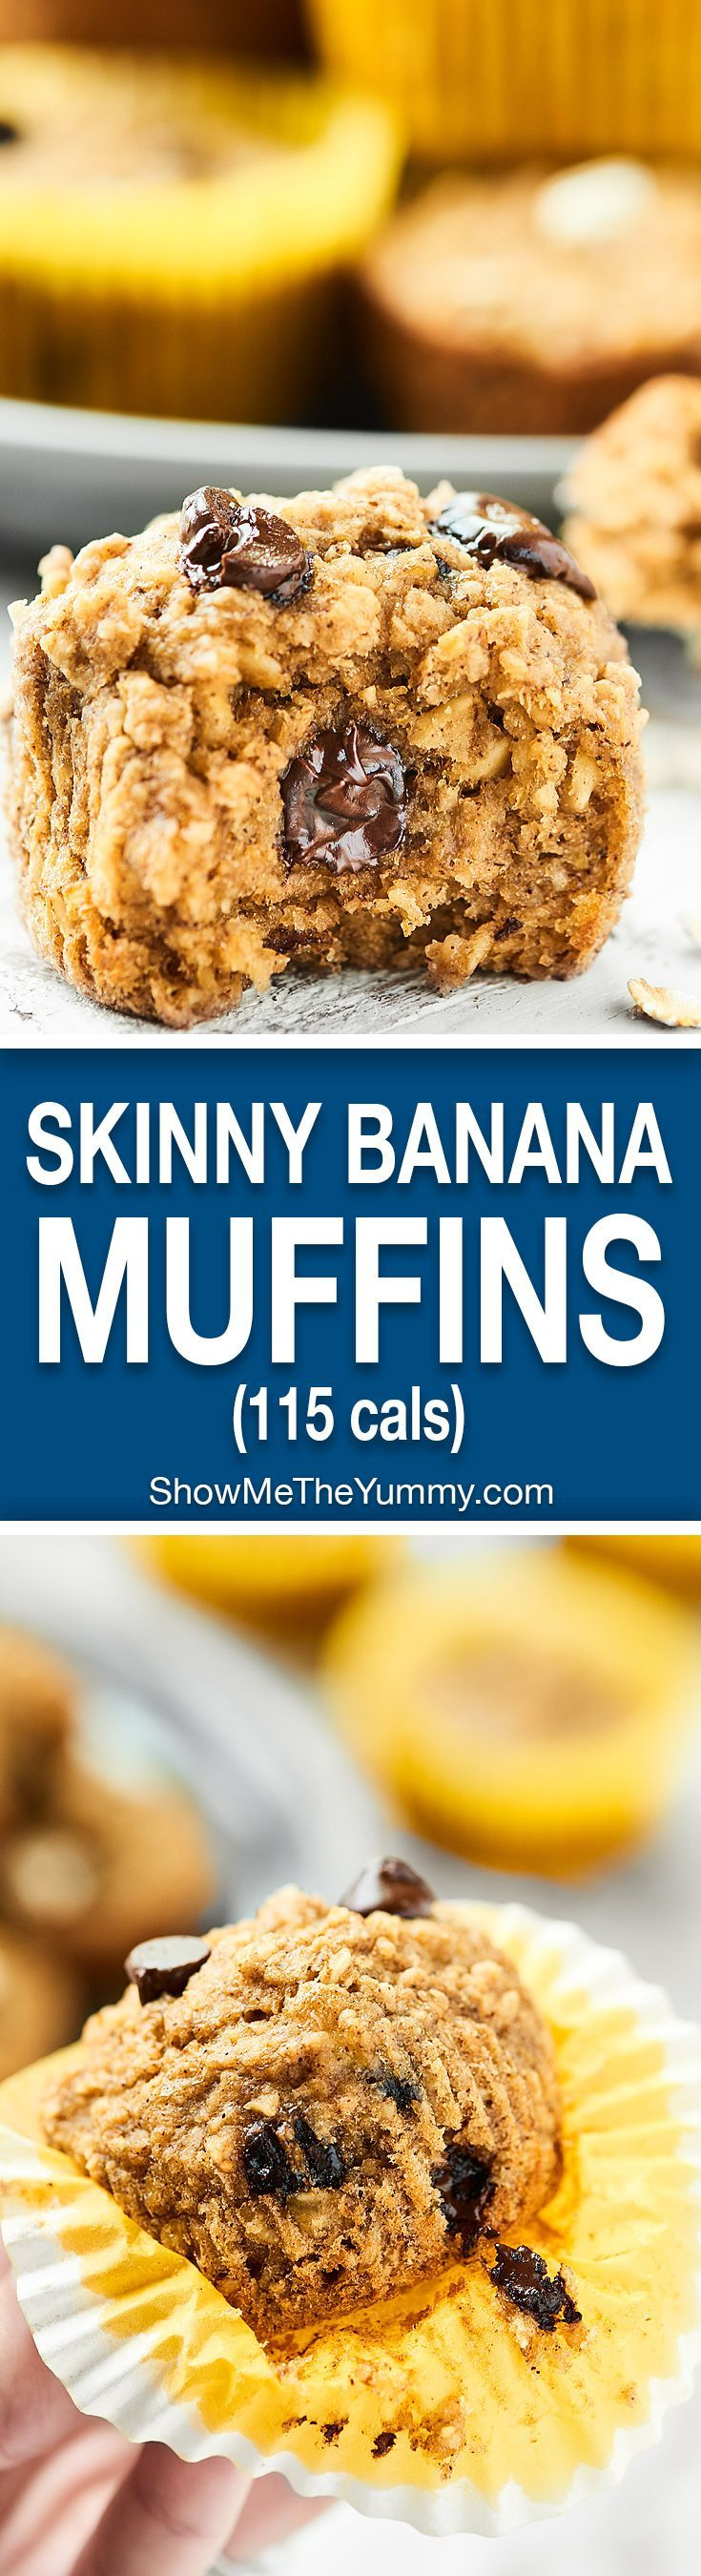 At only 115 calories, these are muffins you don't have to feel bad about! These Skinny Banana Chocolate Chip Muffins are naturally gluten free, vegan, ultra moist, and completely delicious! Nobody will ever guess these are healthy! http://showmetheyummy.com #skinnymuffins #healthymuffins